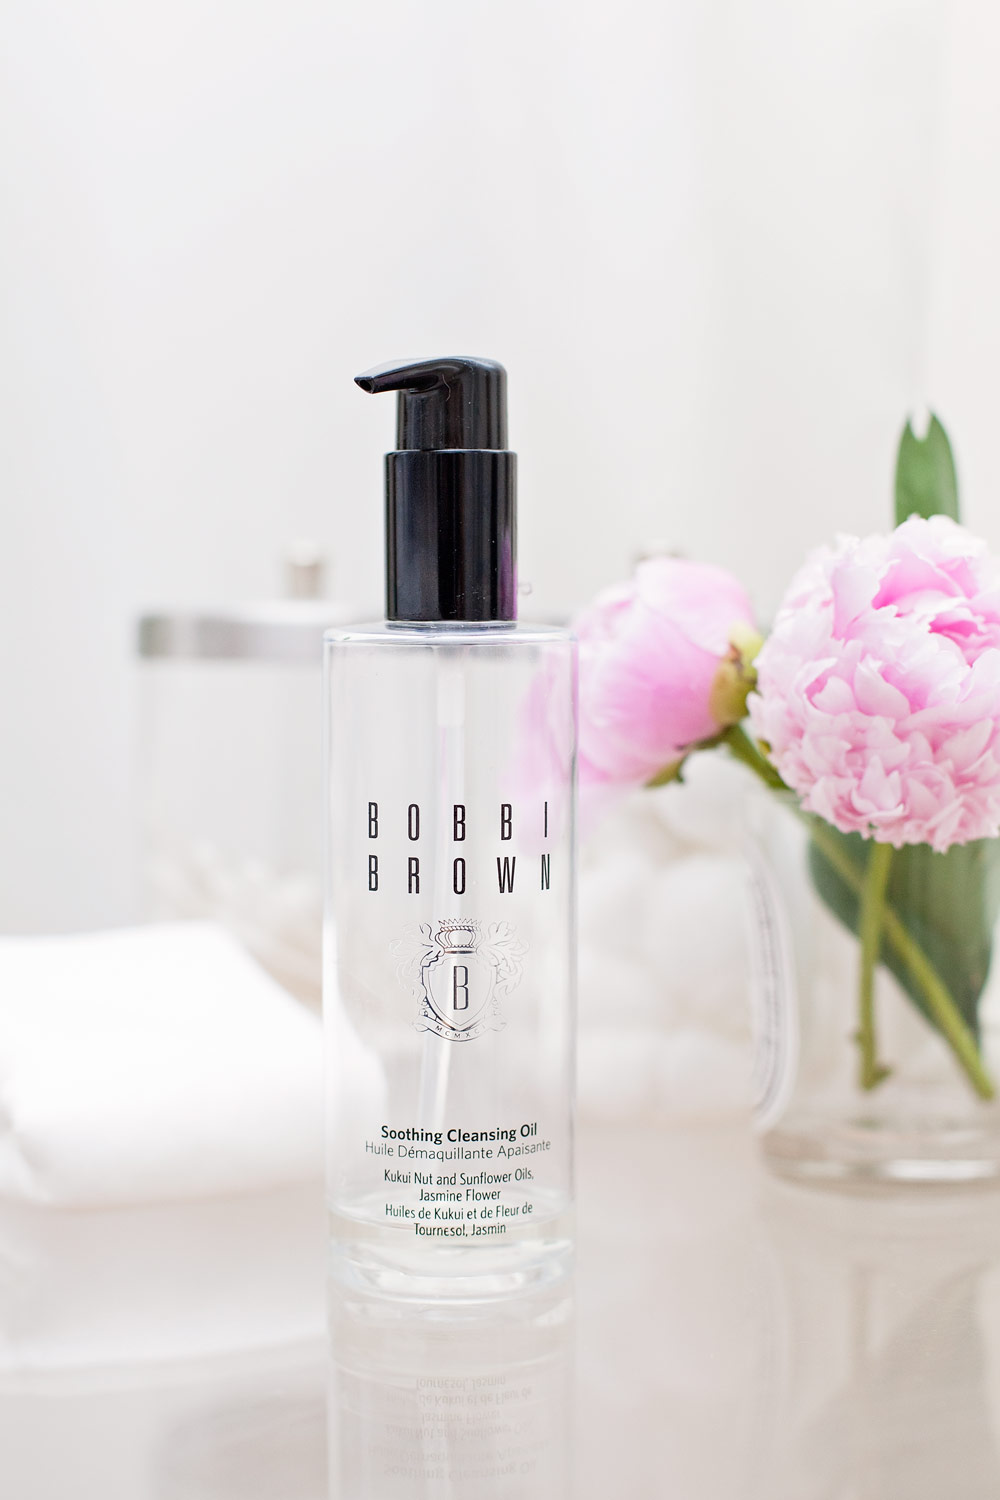 Bobbi Brown Cleansing Oil Beauty Oils to try this summer